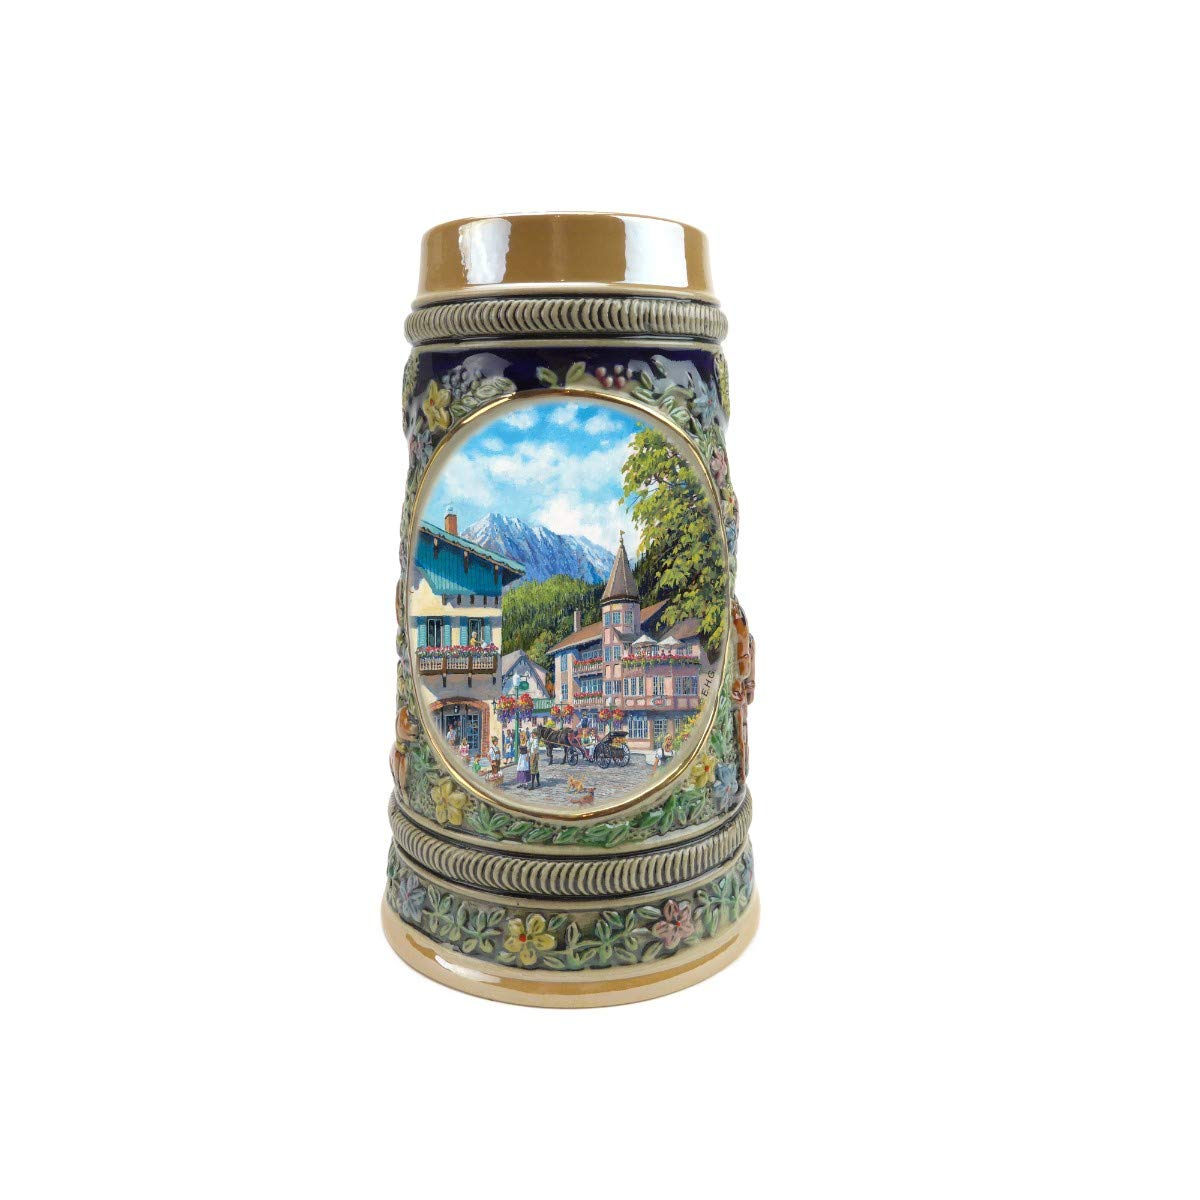 Beer Stein ''Summer In Germany'' Beer Mug by E.H.G (#1 in Collection of Four Steins) | .50 Liter